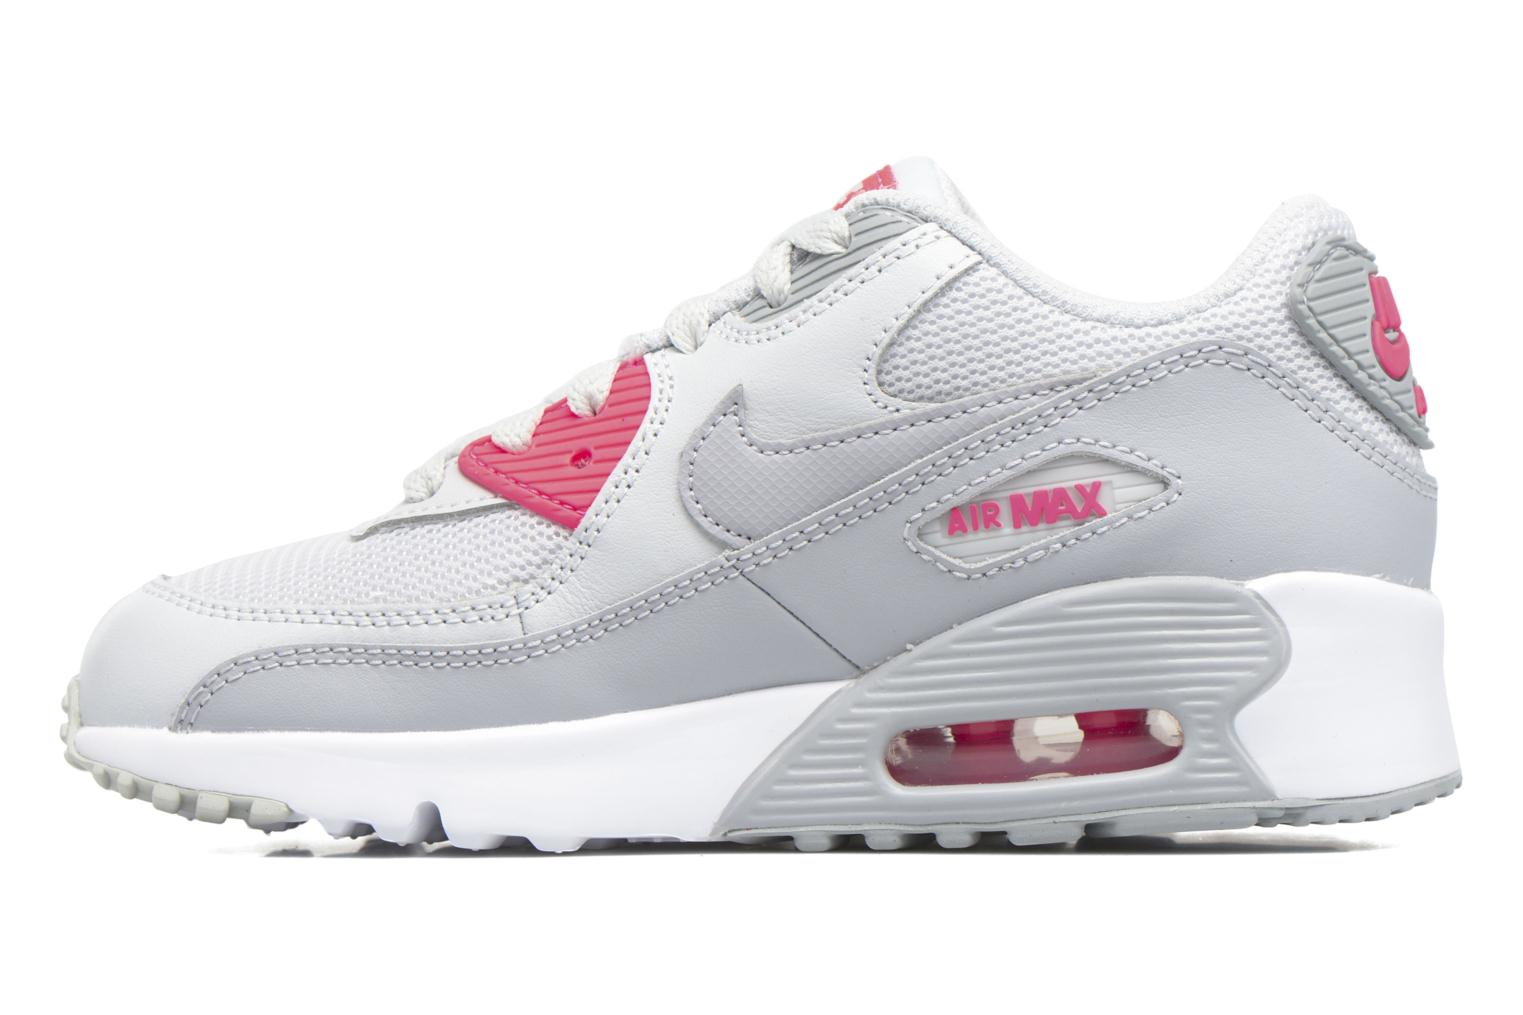 NIKE AIR MAX 90 MESH (PS) Pure Platinum/Wolf Grey-Racer Pink-White